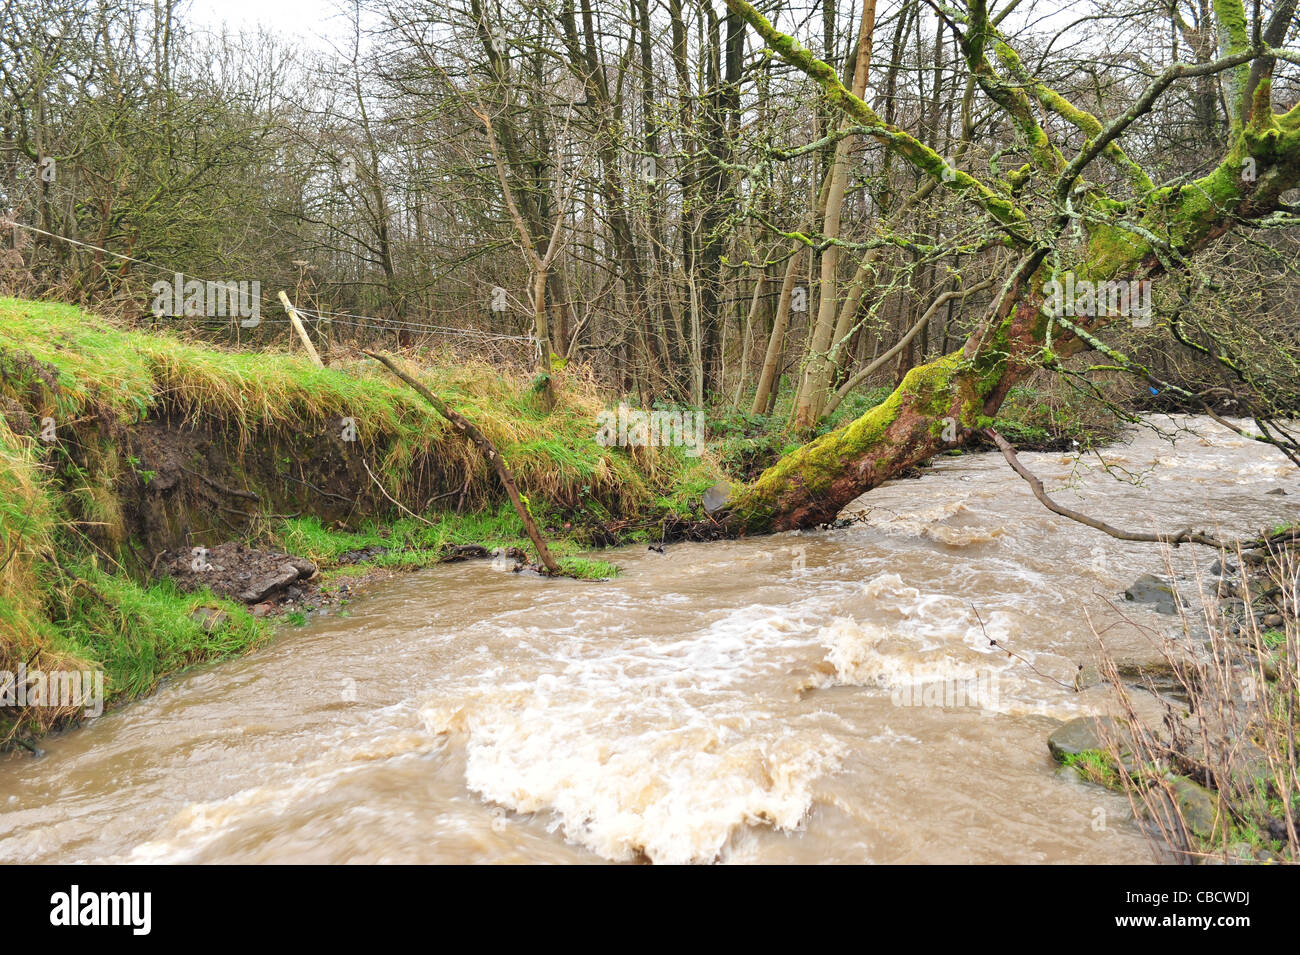 Tree falling into river from erosion and environmental issues on the River Brun in Burnley, Lancashire. - Stock Image